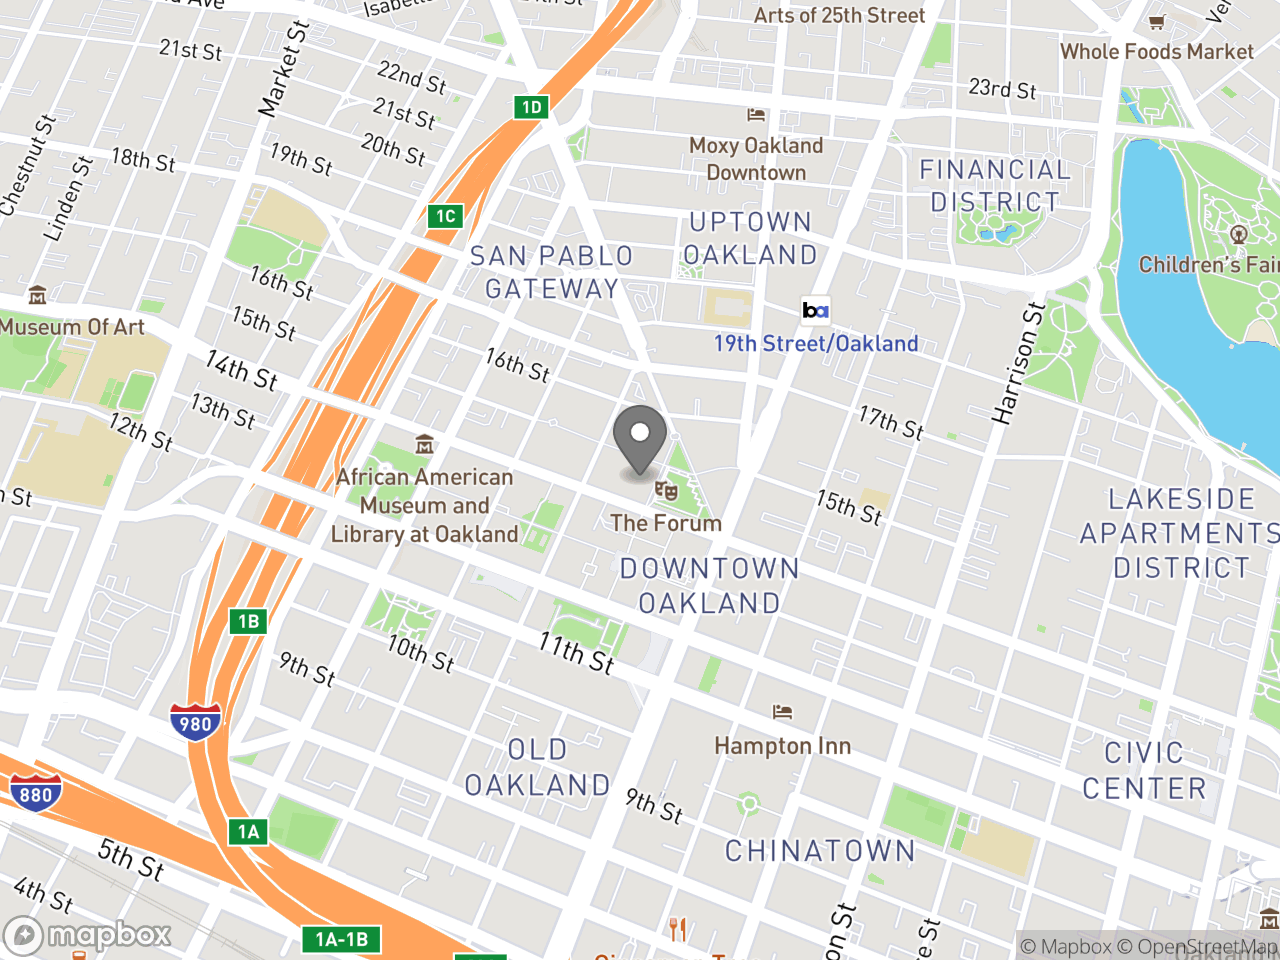 Map image for Sugar Sweetened Beverage Community Advisory Board Meeting August 12, 2019 CANCELLED, located at 1 Frank H Ogawa Plaza in Oakland, CA 94612